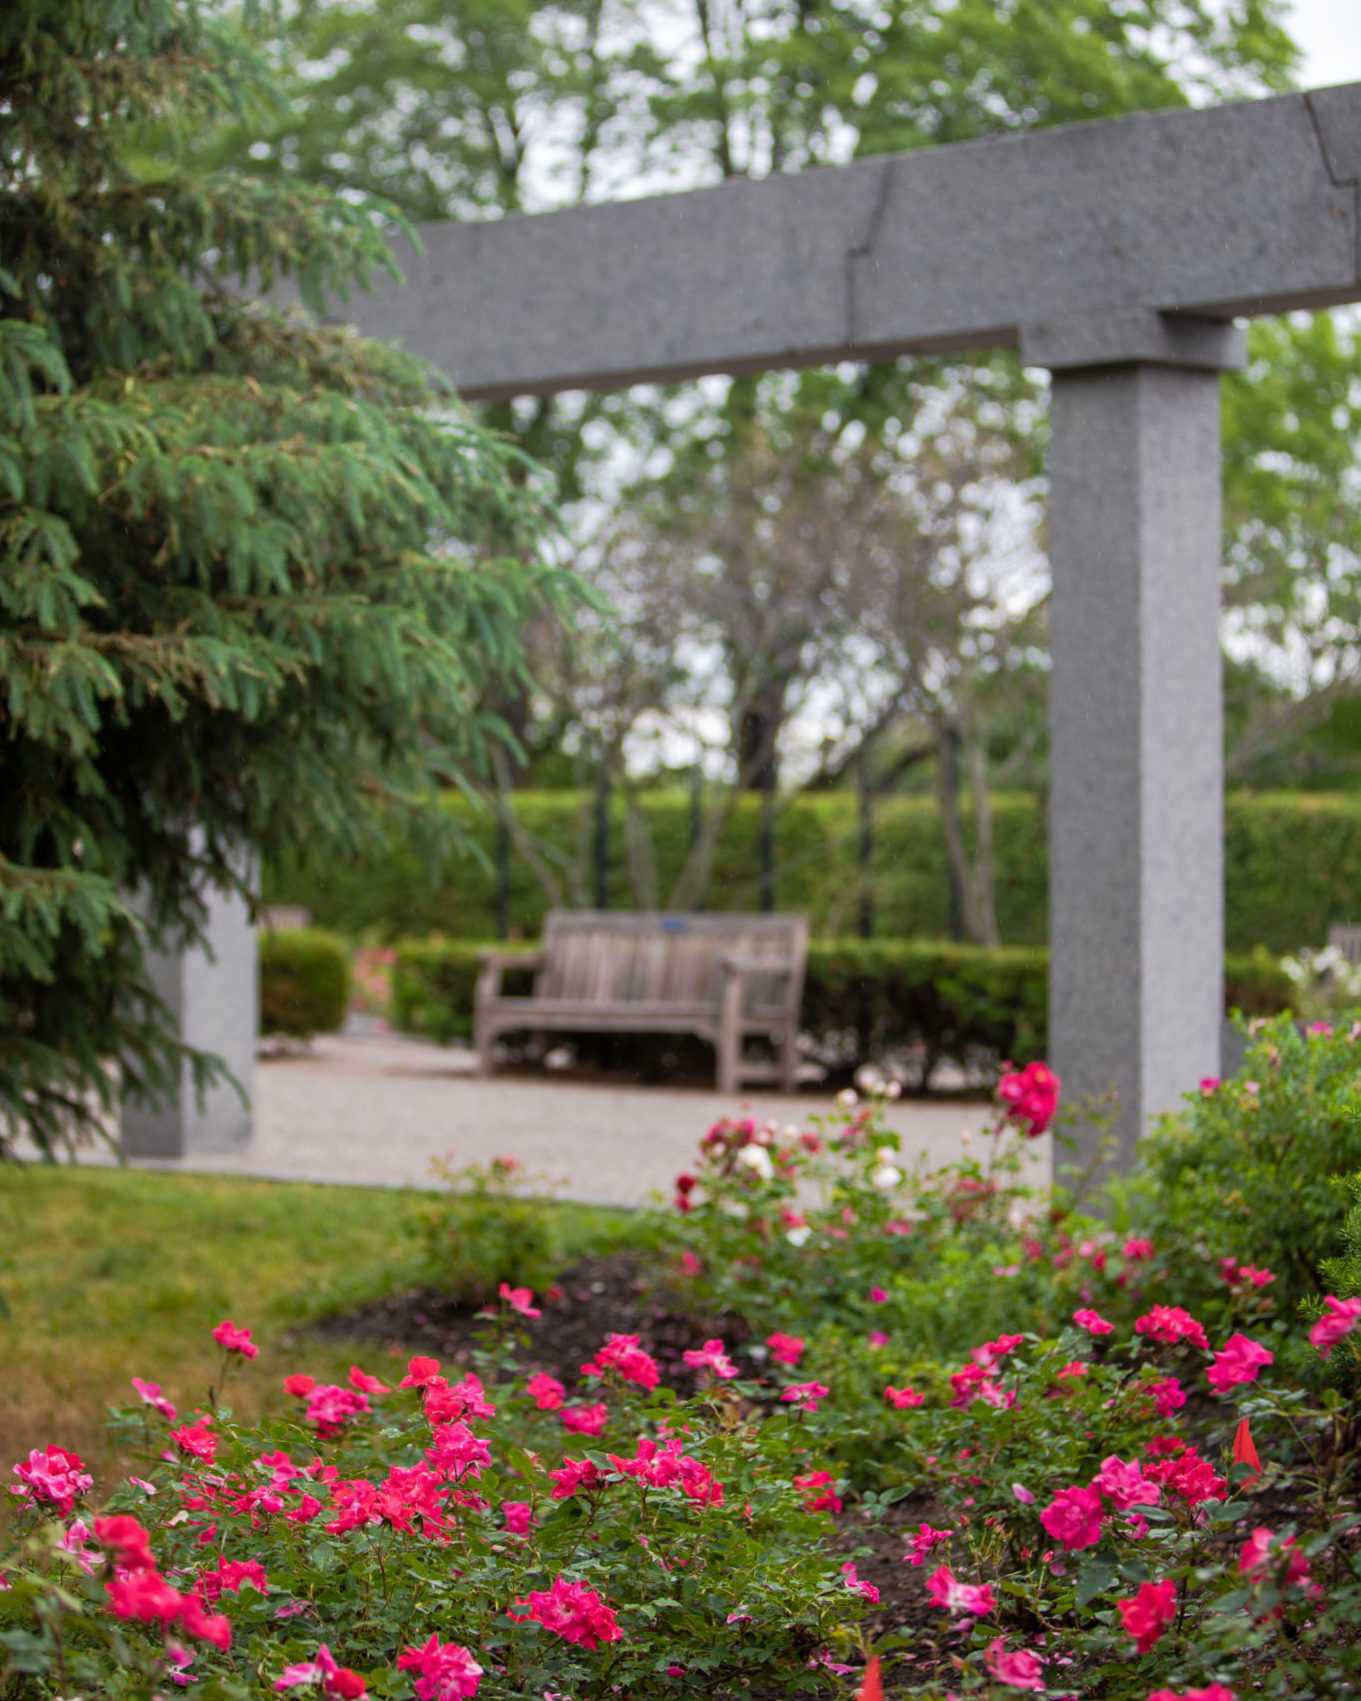 Bright pink rose bushes in the foreground, with marble columns, mature trees and a bench in the background.